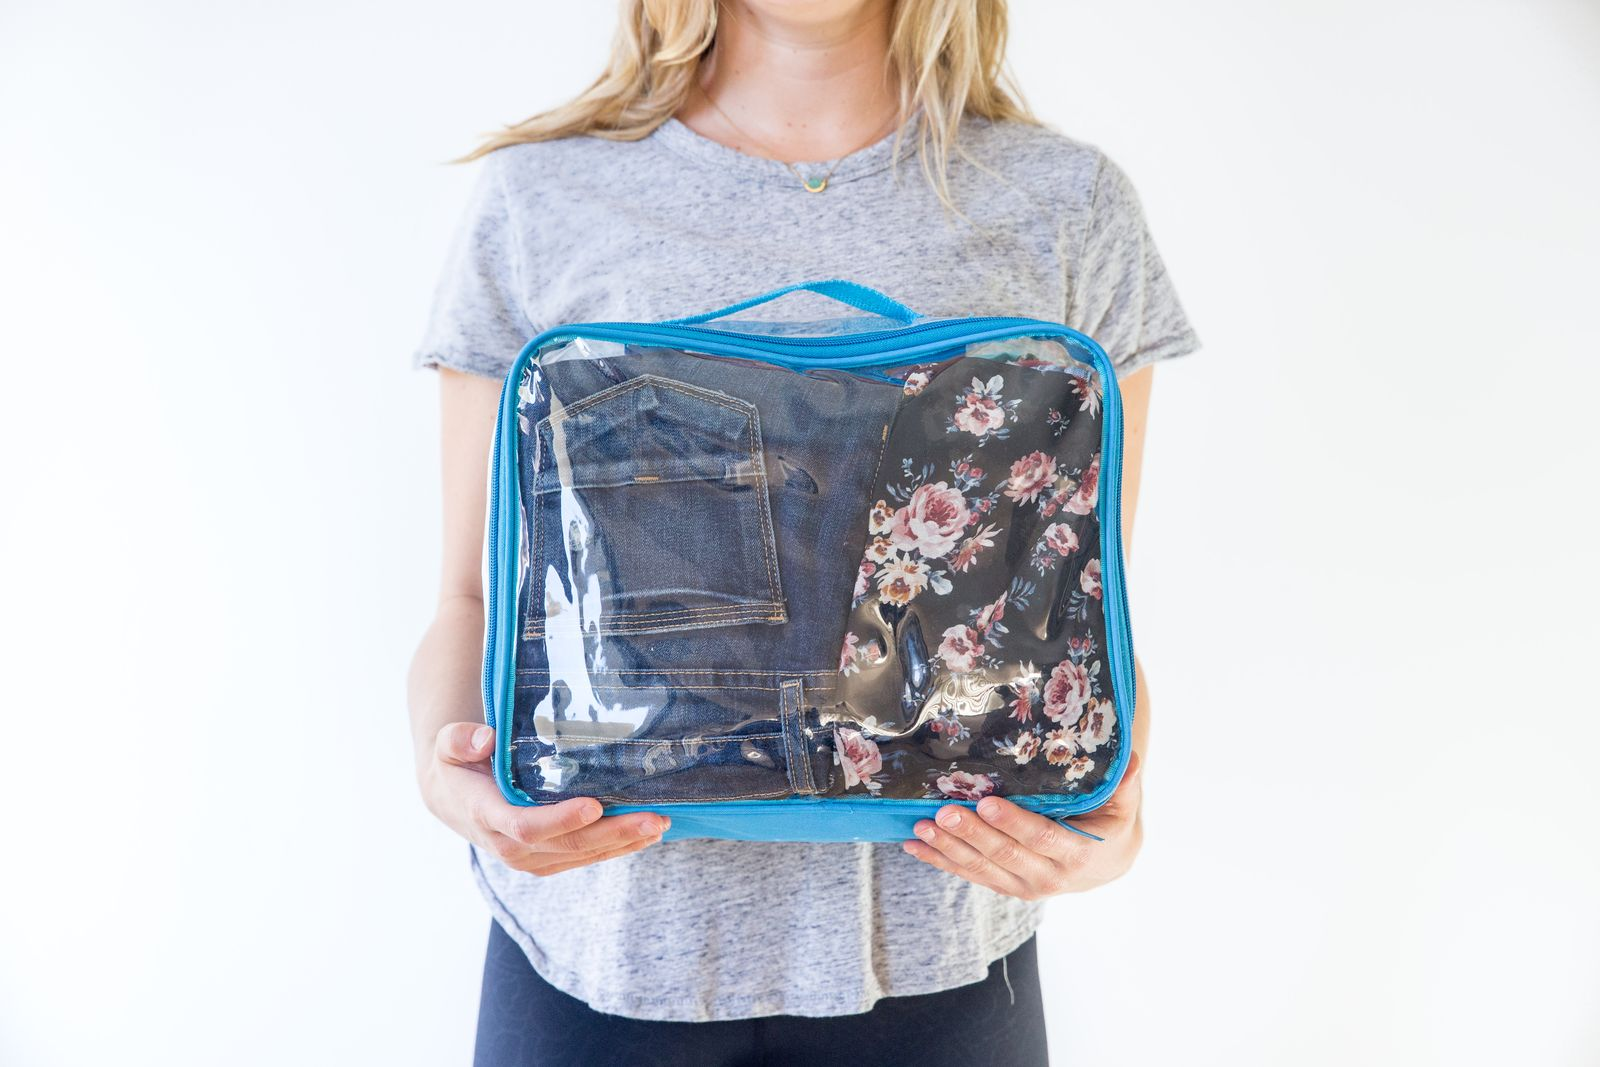 Jeans packed in turquoise clear packing cube